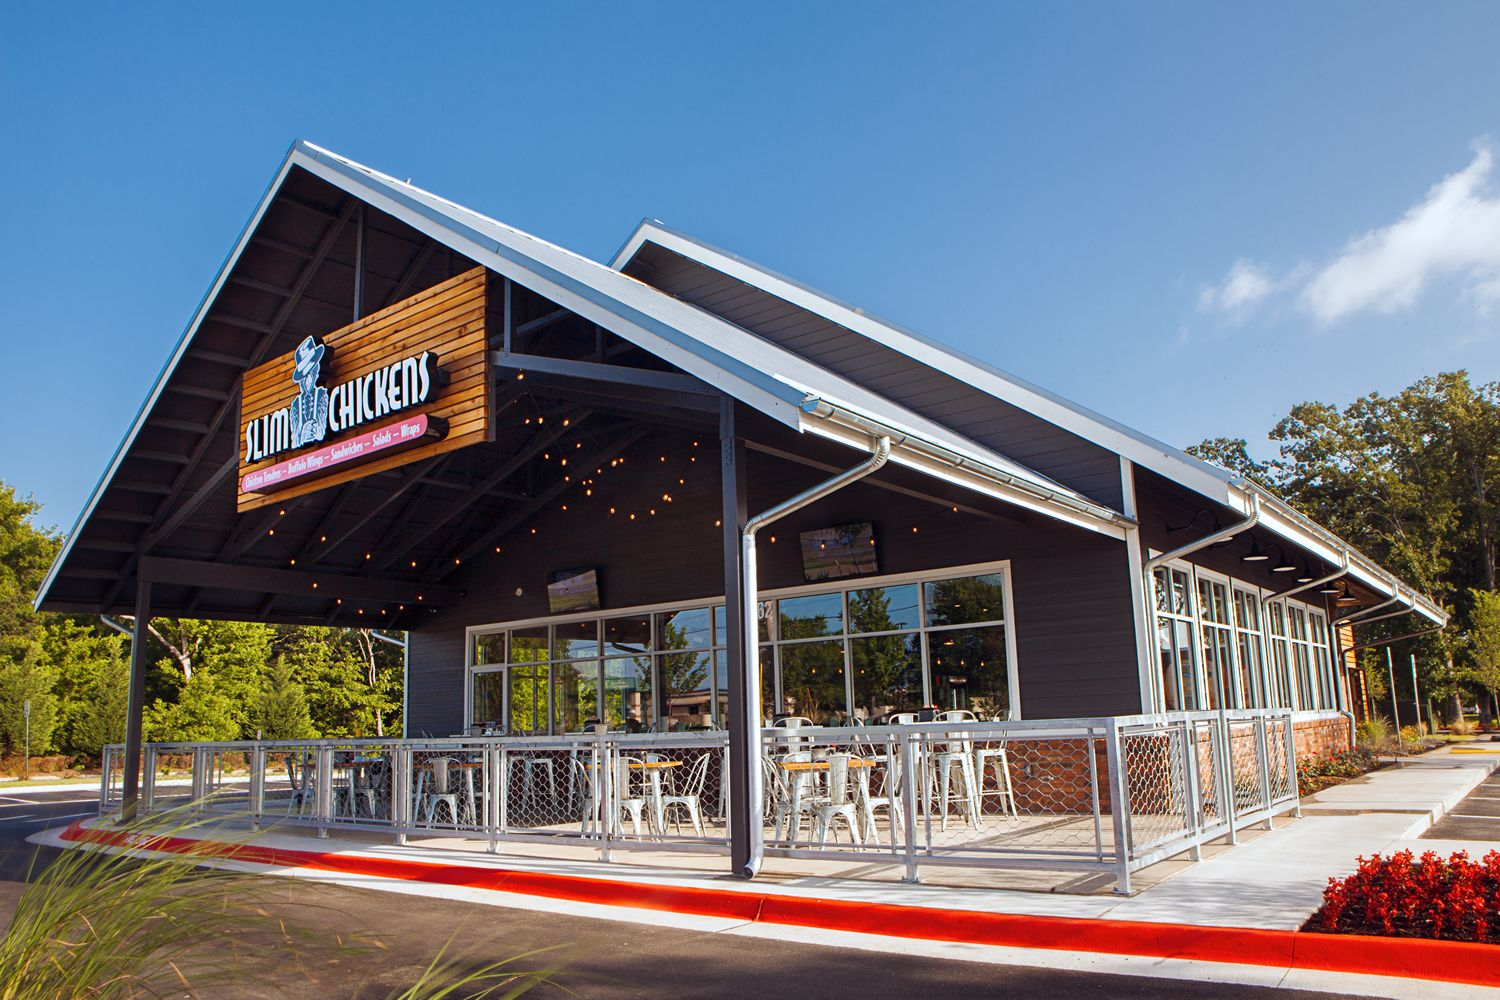 Slim Chickens Builds Momentum in Texas, Brings Better Chicken to Mansfield